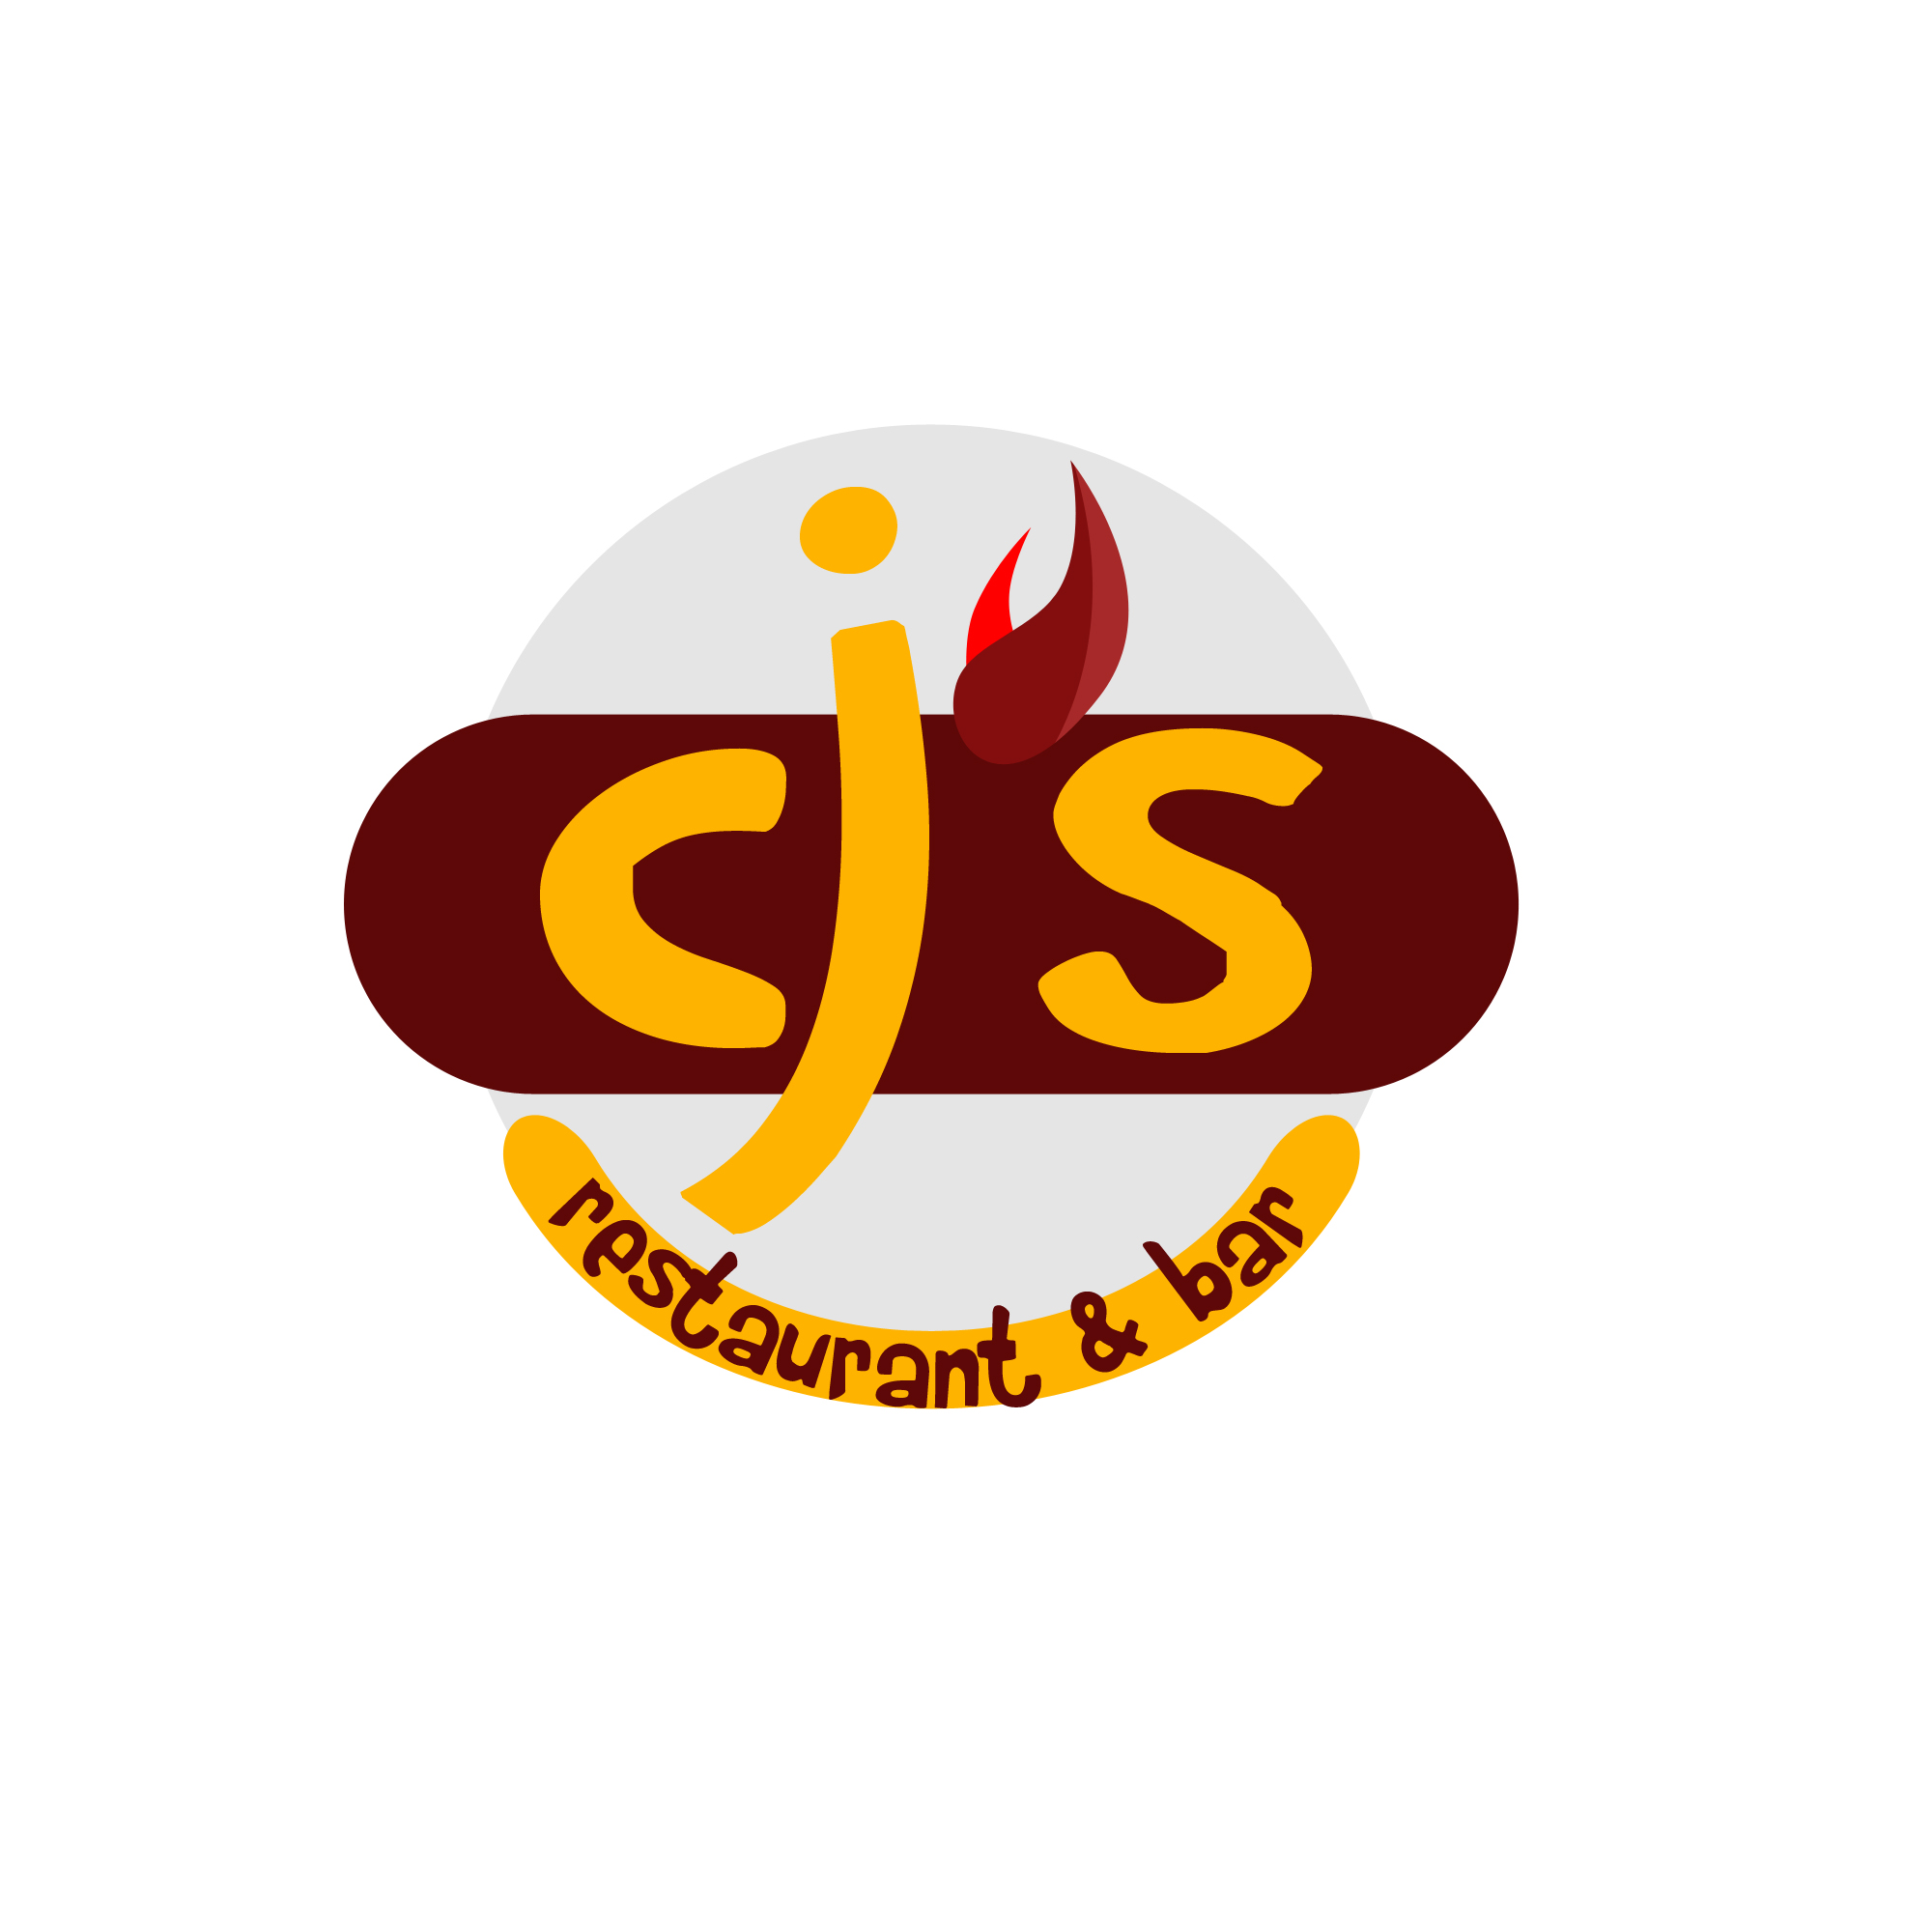 Logo Design by Kenneth Joel - Entry No. 8 in the Logo Design Contest Inspiring Logo Design for Cj's.